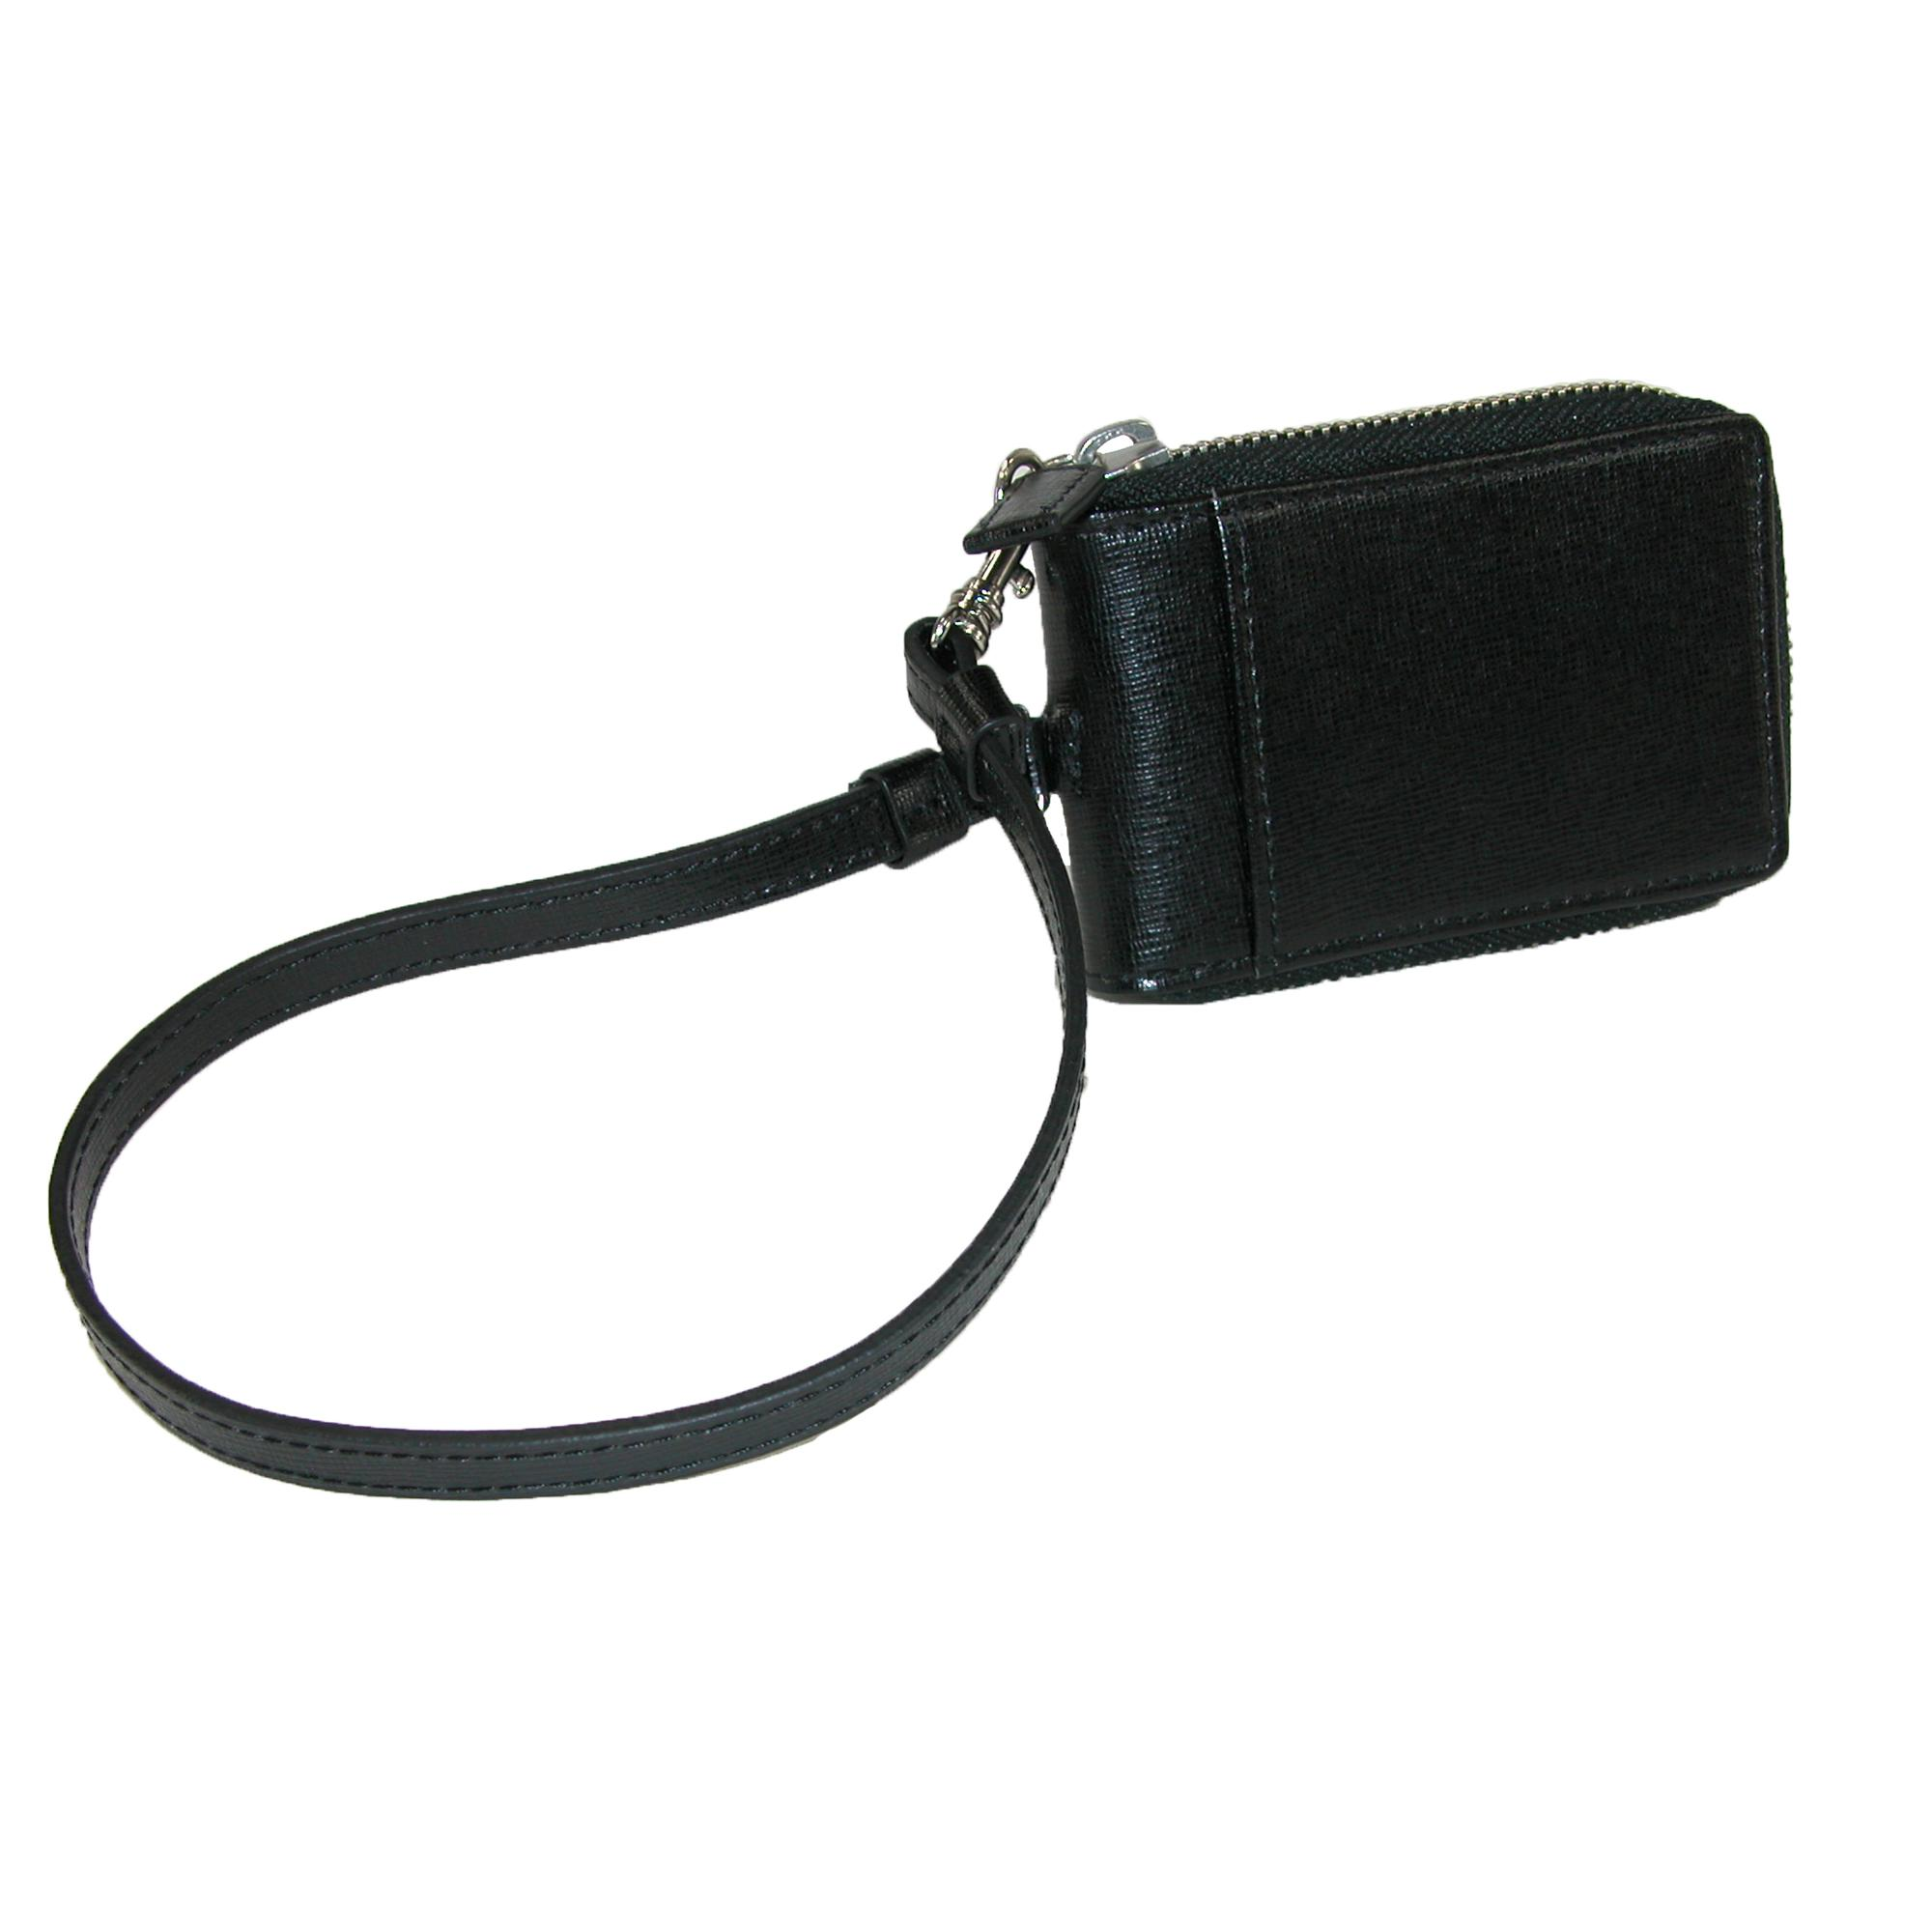 Royce Leather Leather Rfid Blocking Zip Around Key Case With Wrist Strap